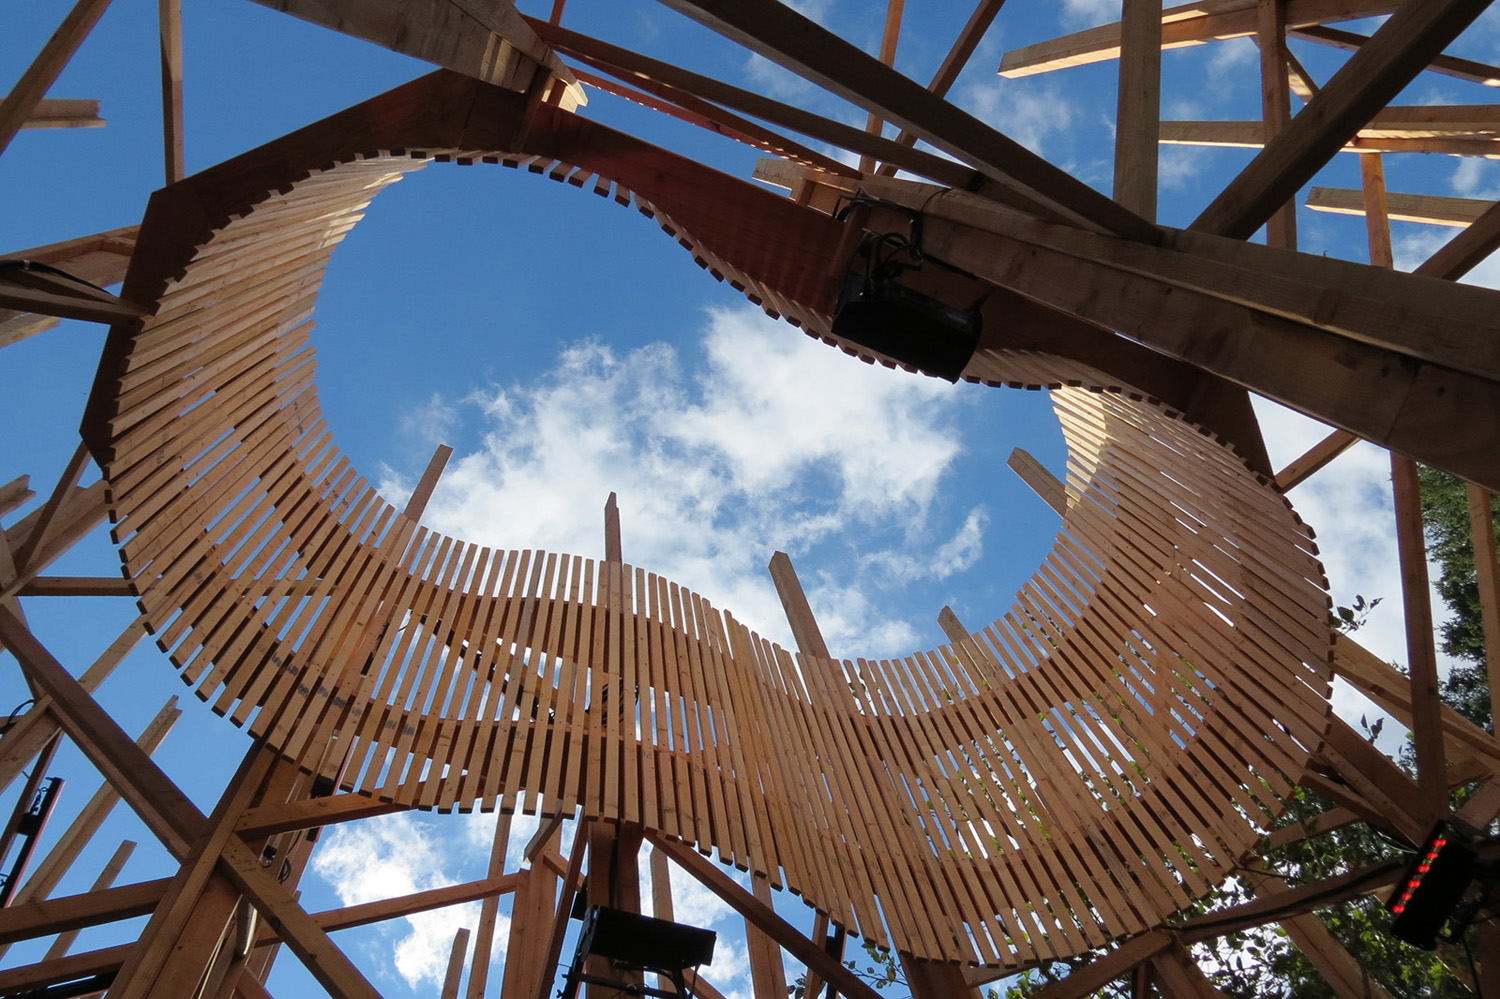 Above the benches the 'nesculus' (nest + oculus) frames the sky Clive Knights